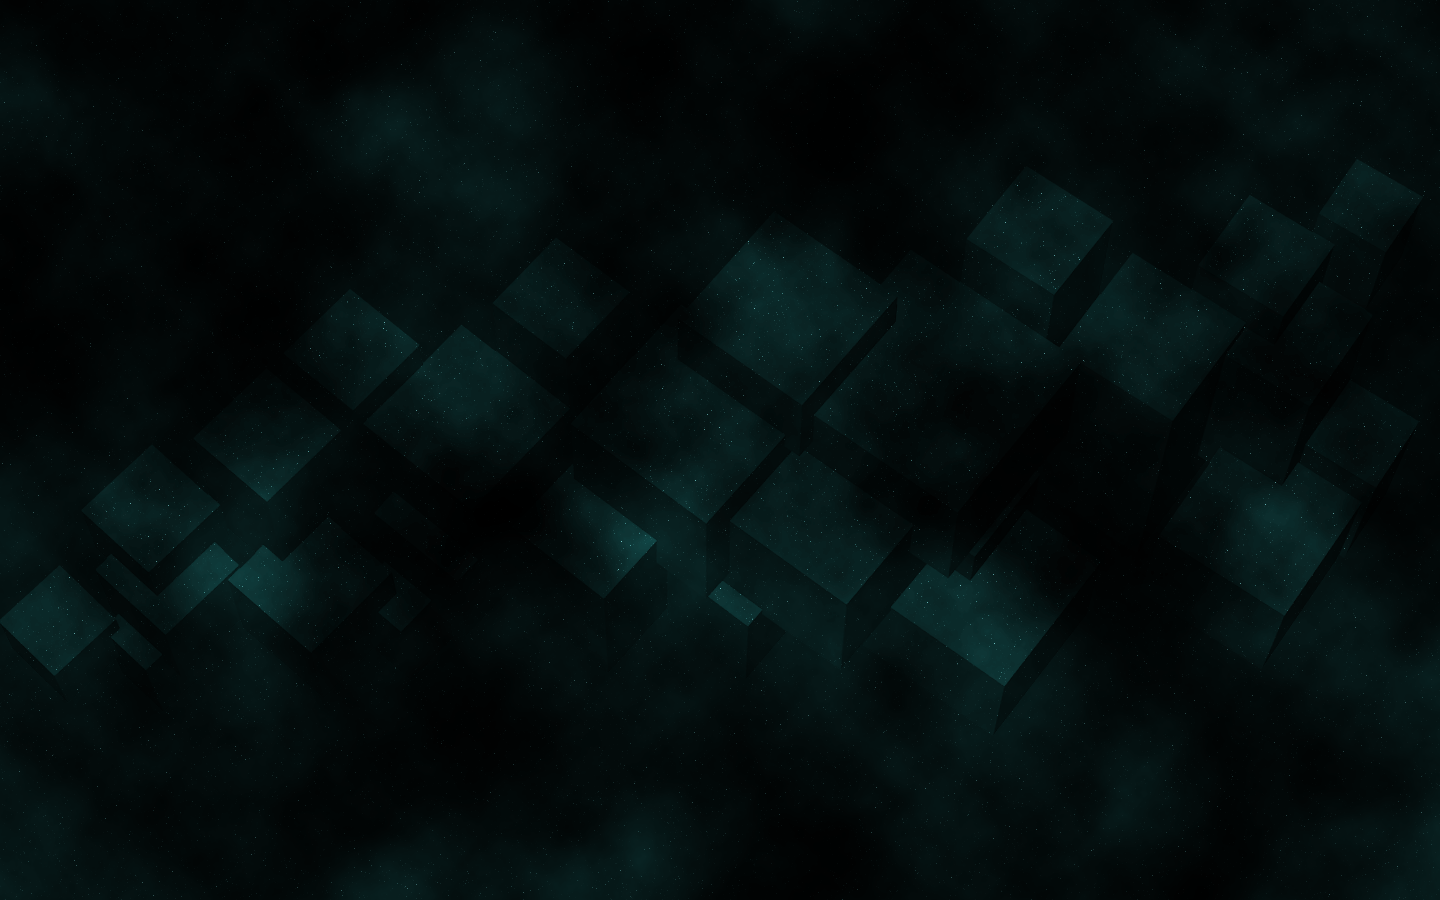 Free Download Abstract Cubes Dark Green Wallpaper Hq